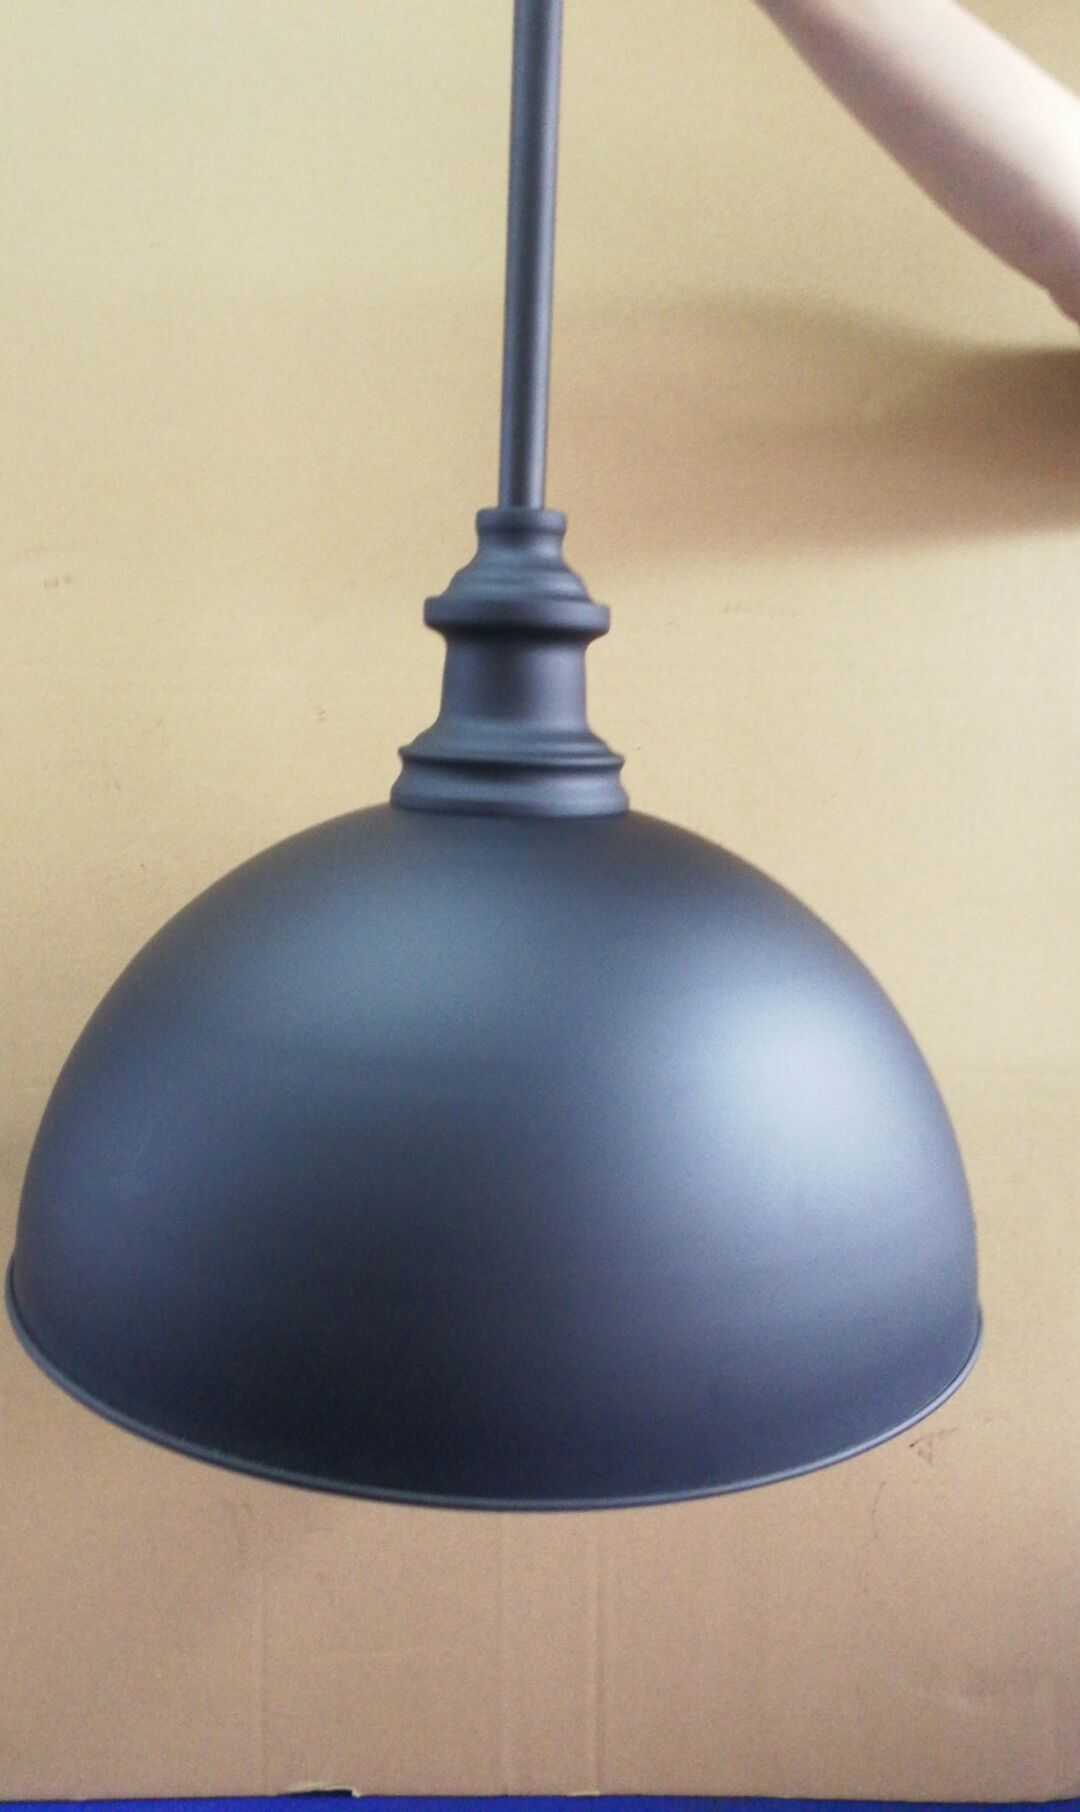 Black steel home decorative industrial pendant lamp (UC415)